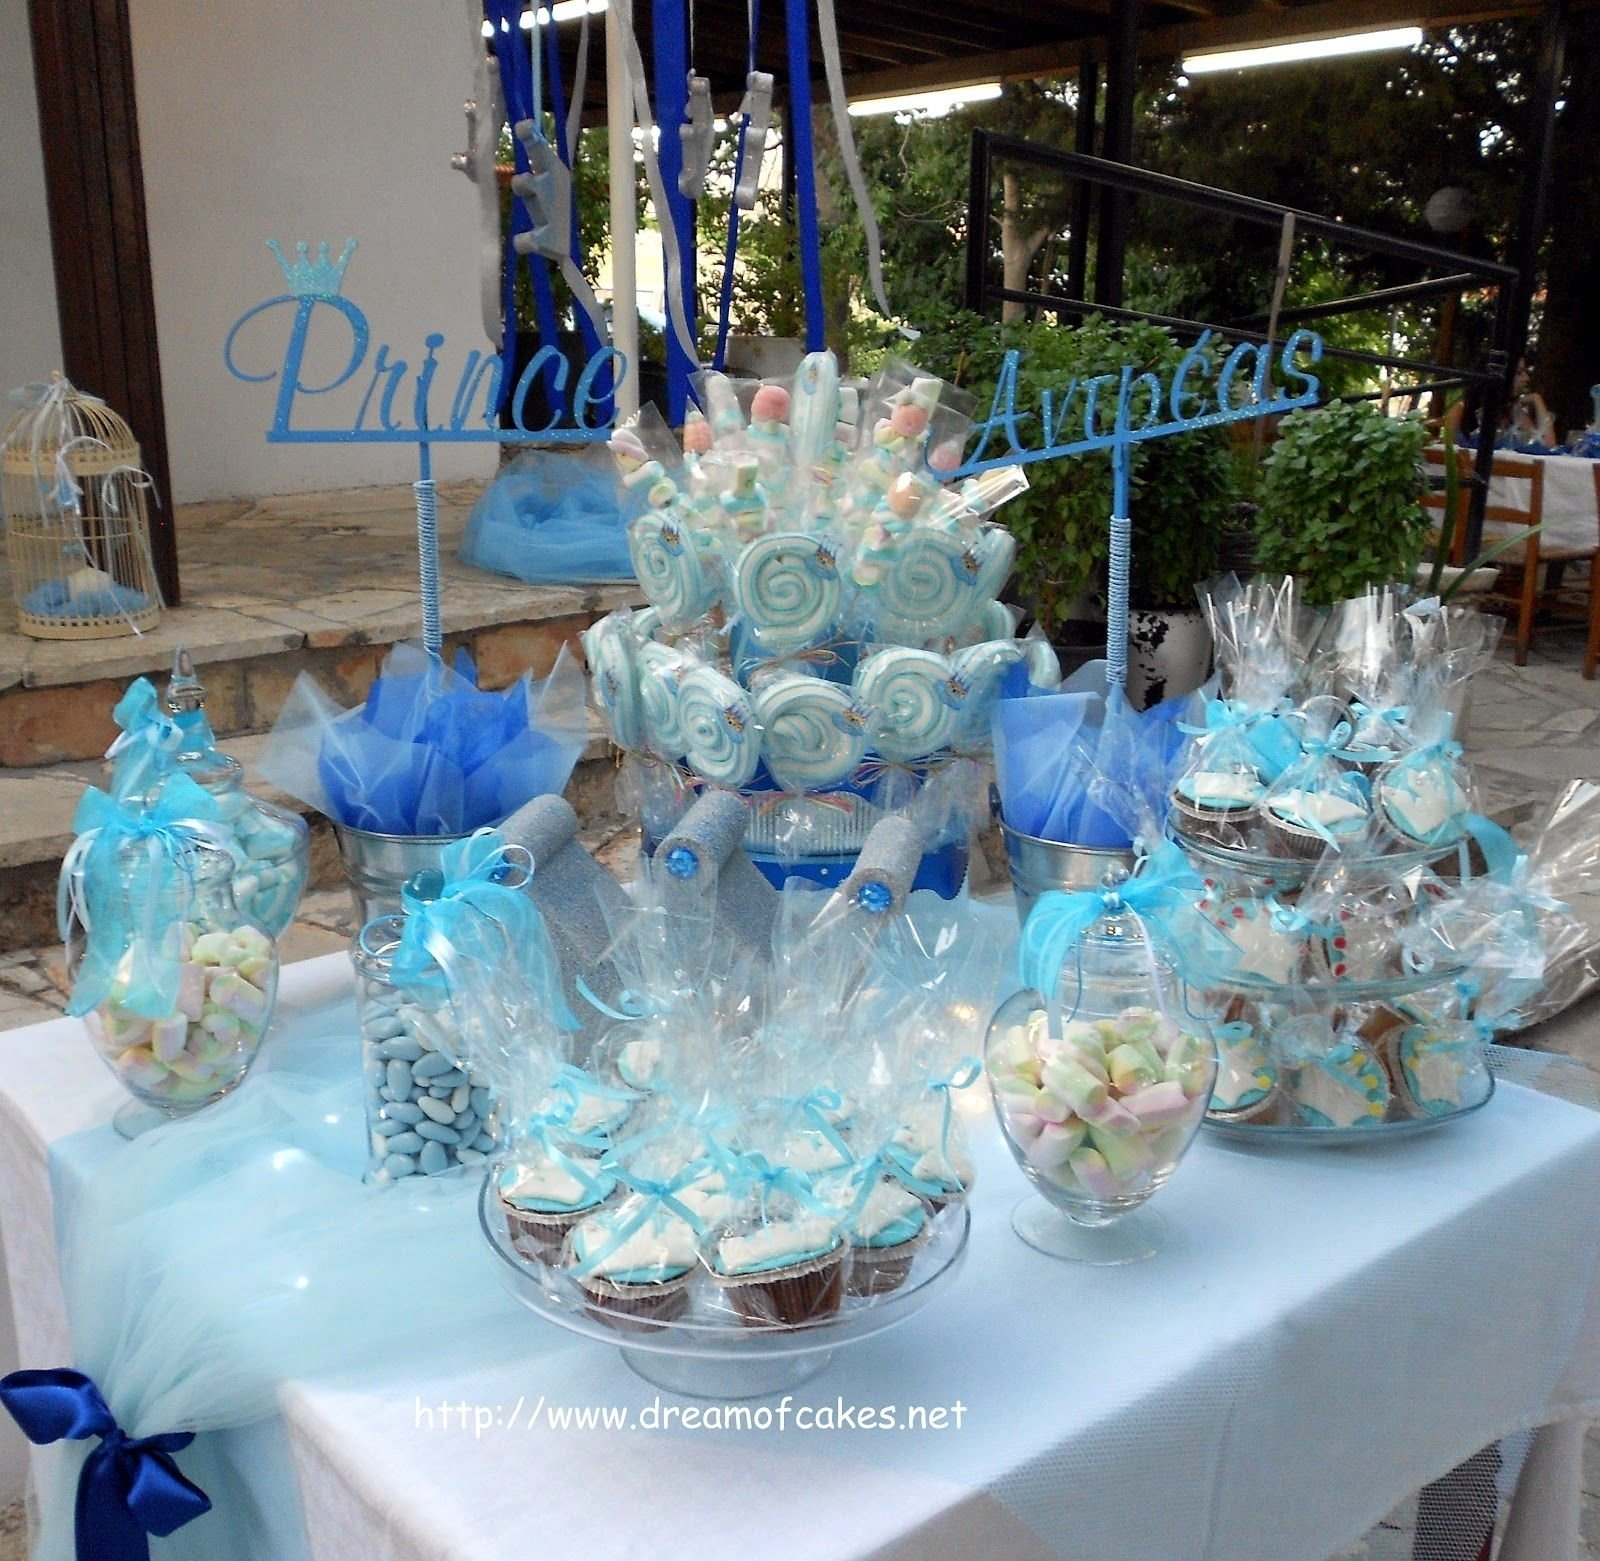 10 Famous Baptism Party Ideas For Boys christeningdecorationsideasforboys displaying 17 images for 2020